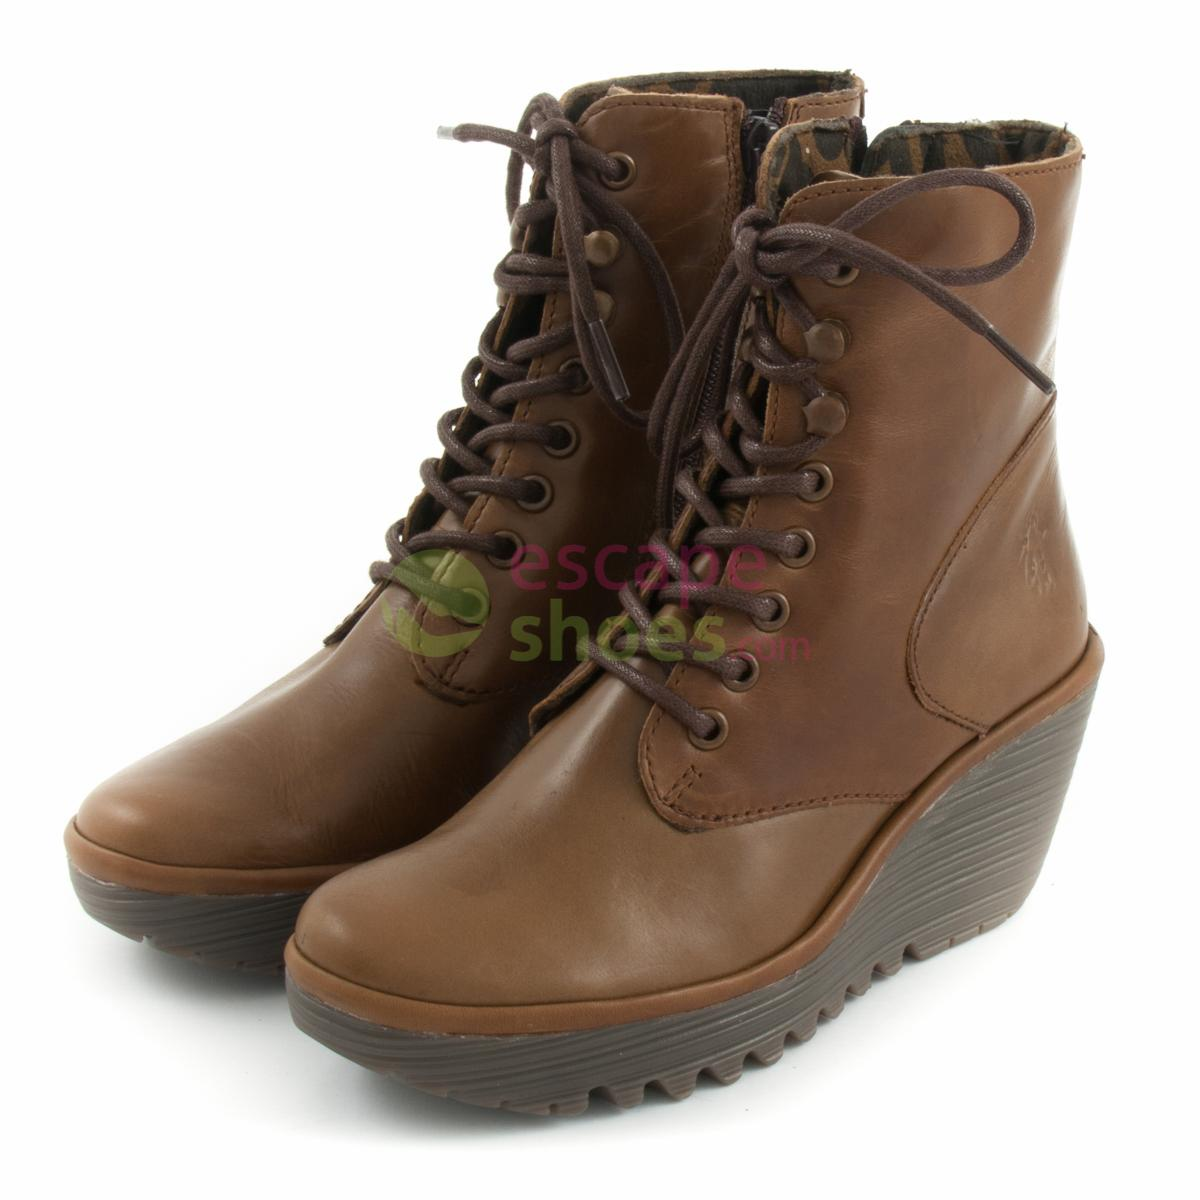 83e8e4a3c3dd4 Footwear / Ankle Boots · Botins FLY LONDON Yellow Ygot Camel P500588008